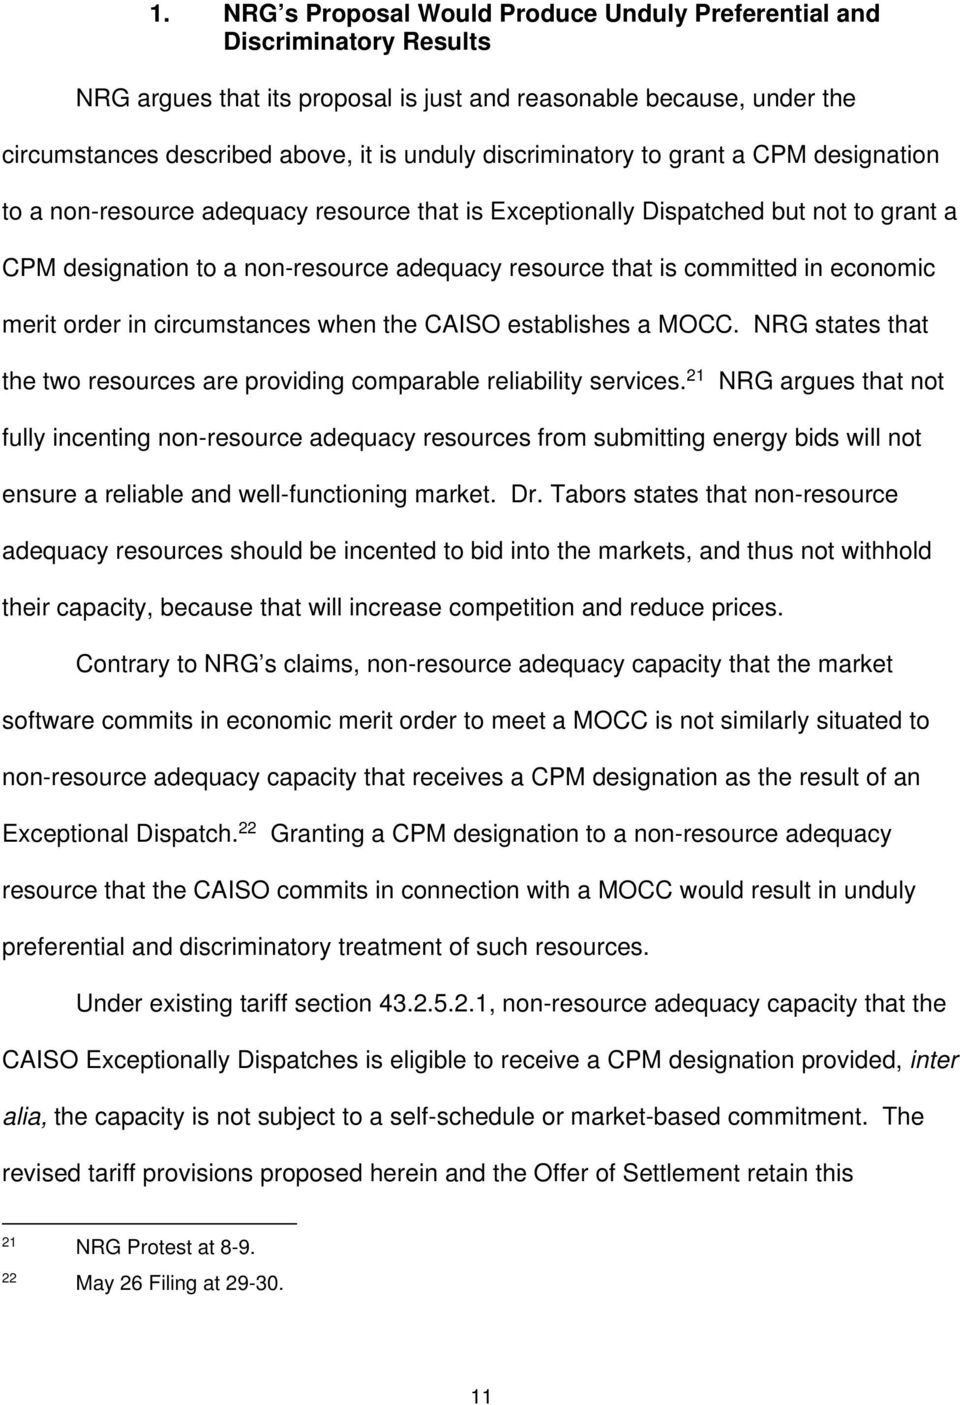 in economic merit order in circumstances when the CAISO establishes a MOCC. NRG states that the two resources are providing comparable reliability services.